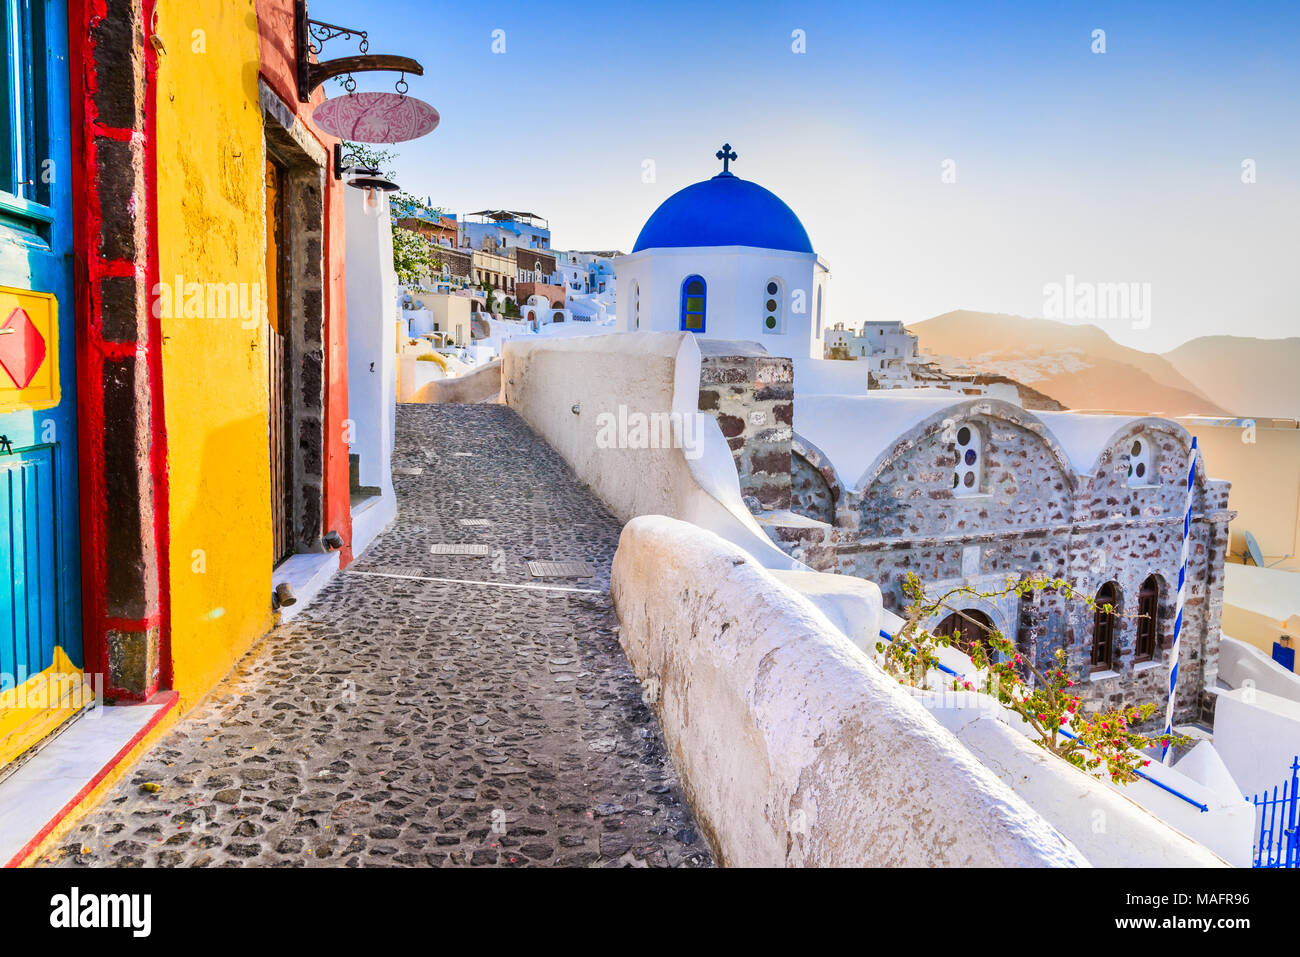 Santorini, Greece. Oia, white village with cobbled narrow paths, famous attraction of Greek Cyclades Islands, Aegean Sea. - Stock Image